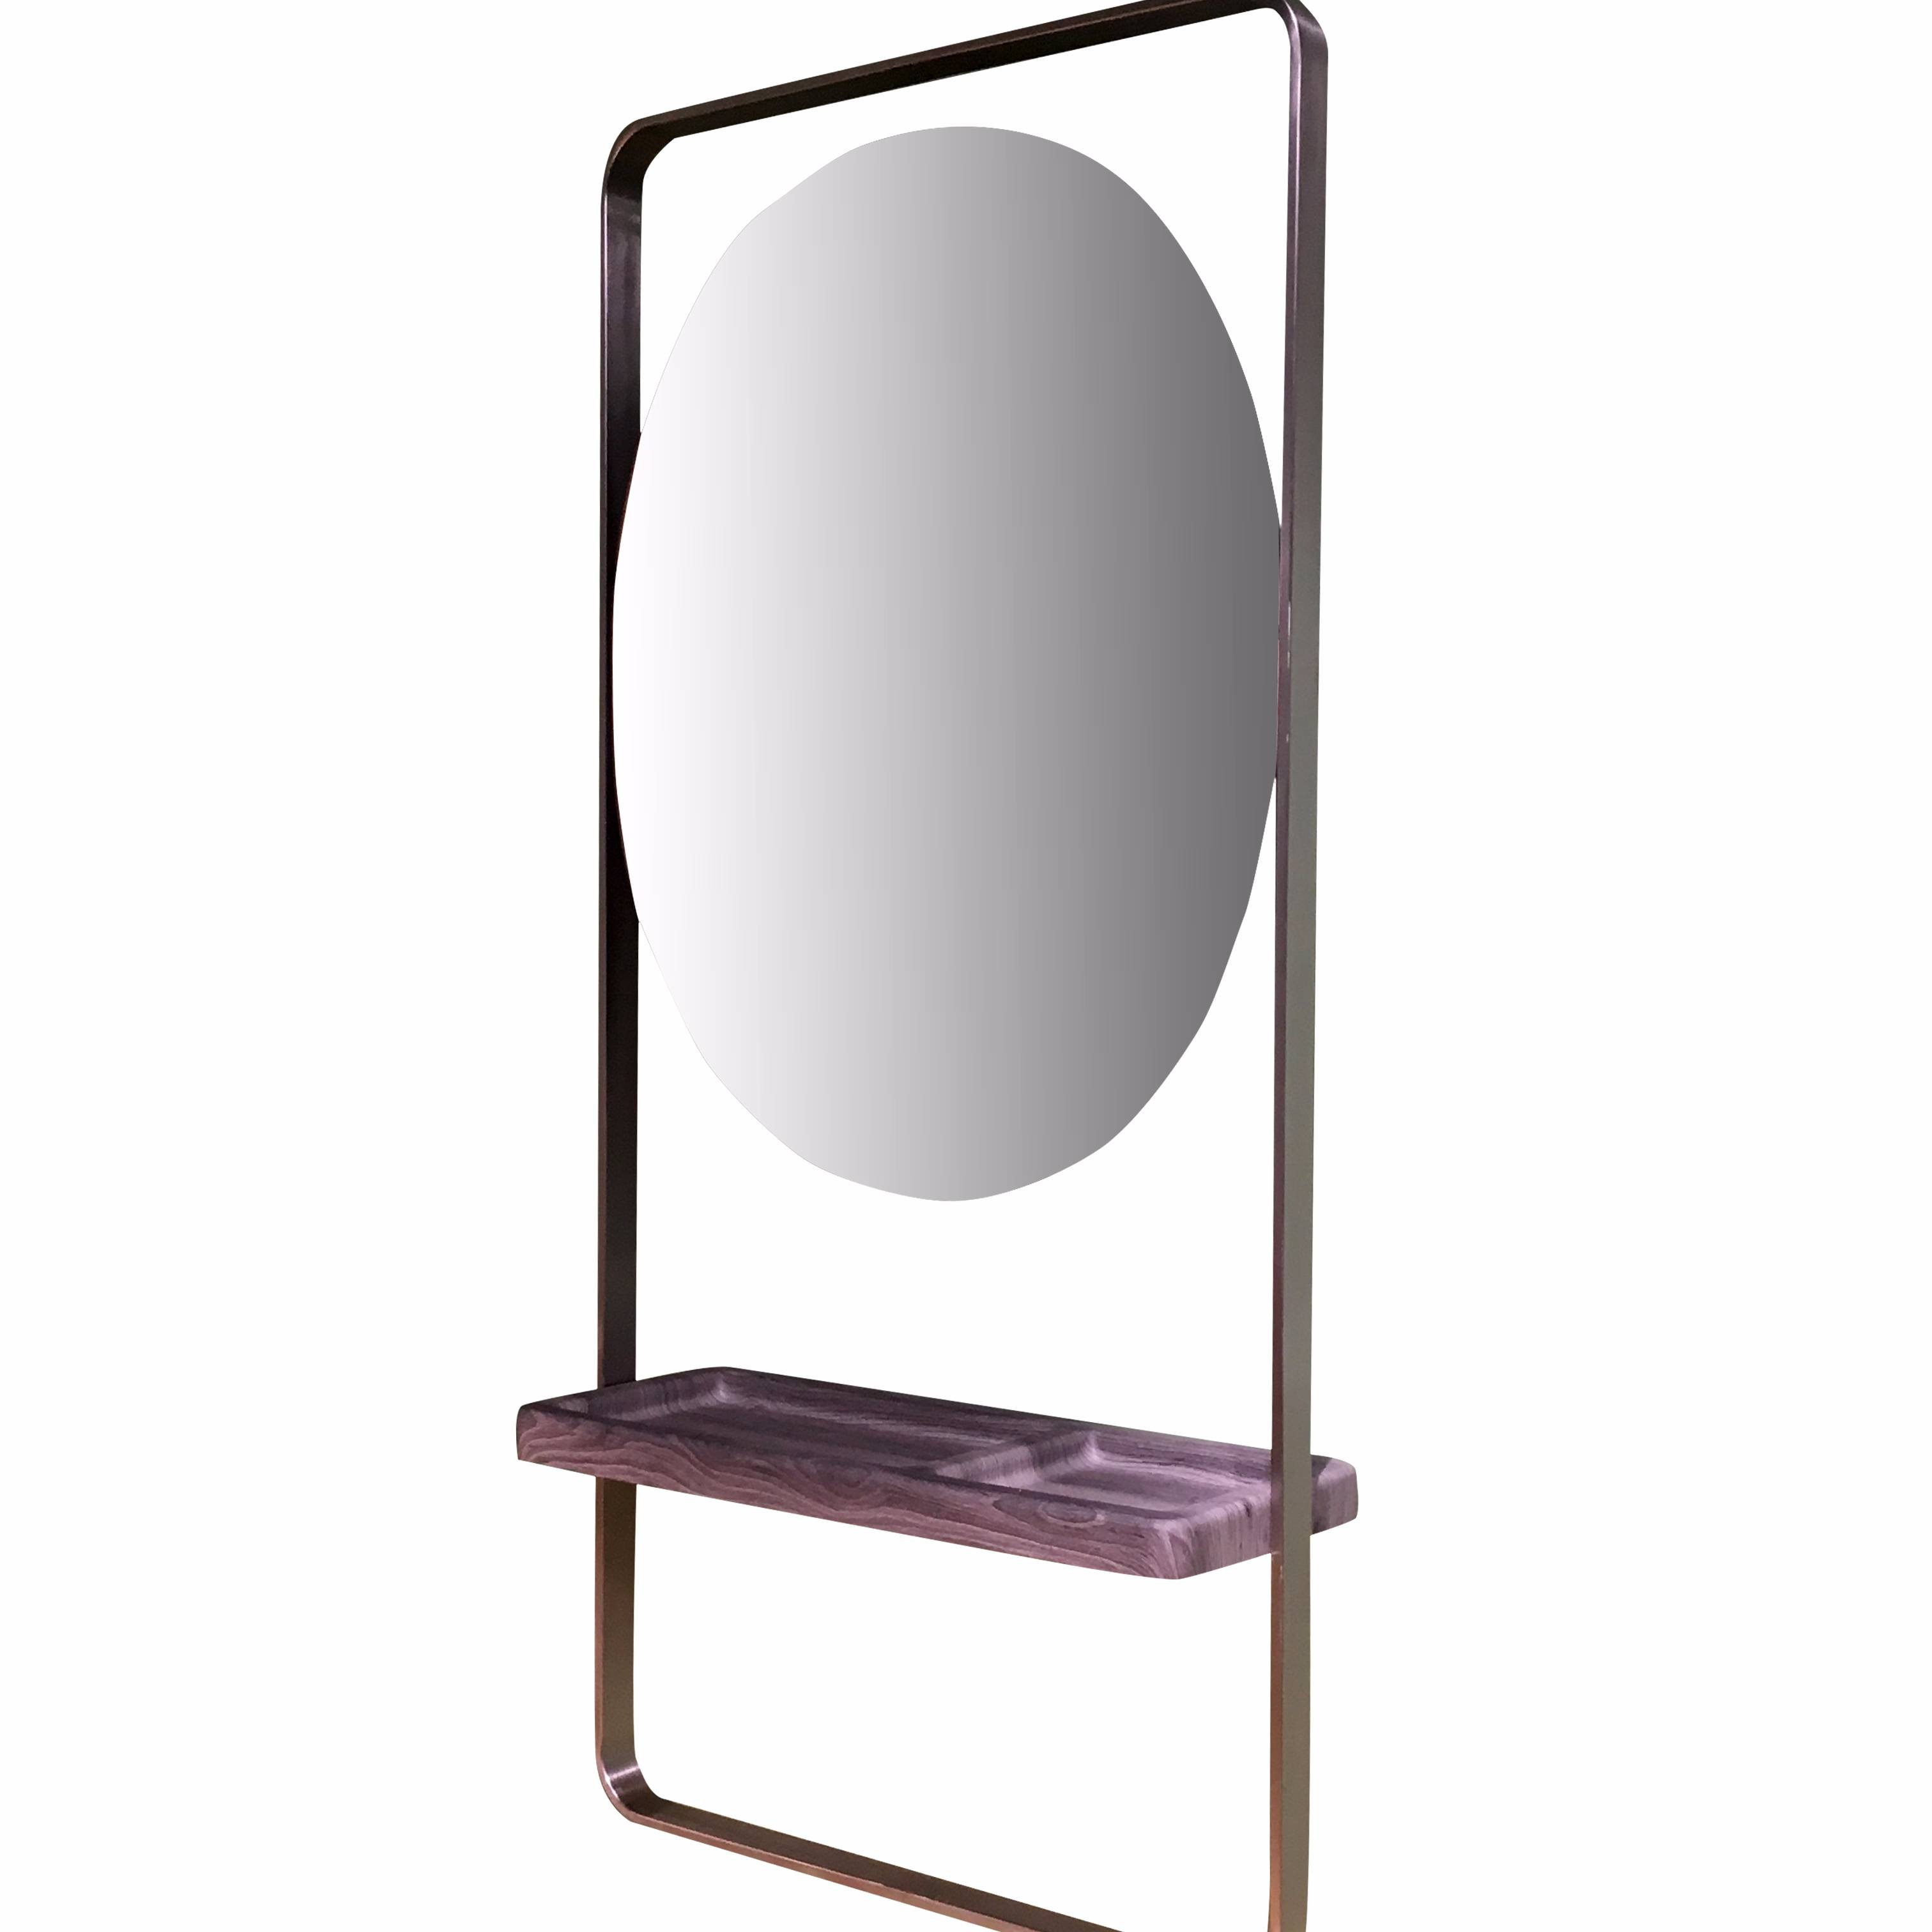 New and Fashionable Single Side Mirror Station  For Salon